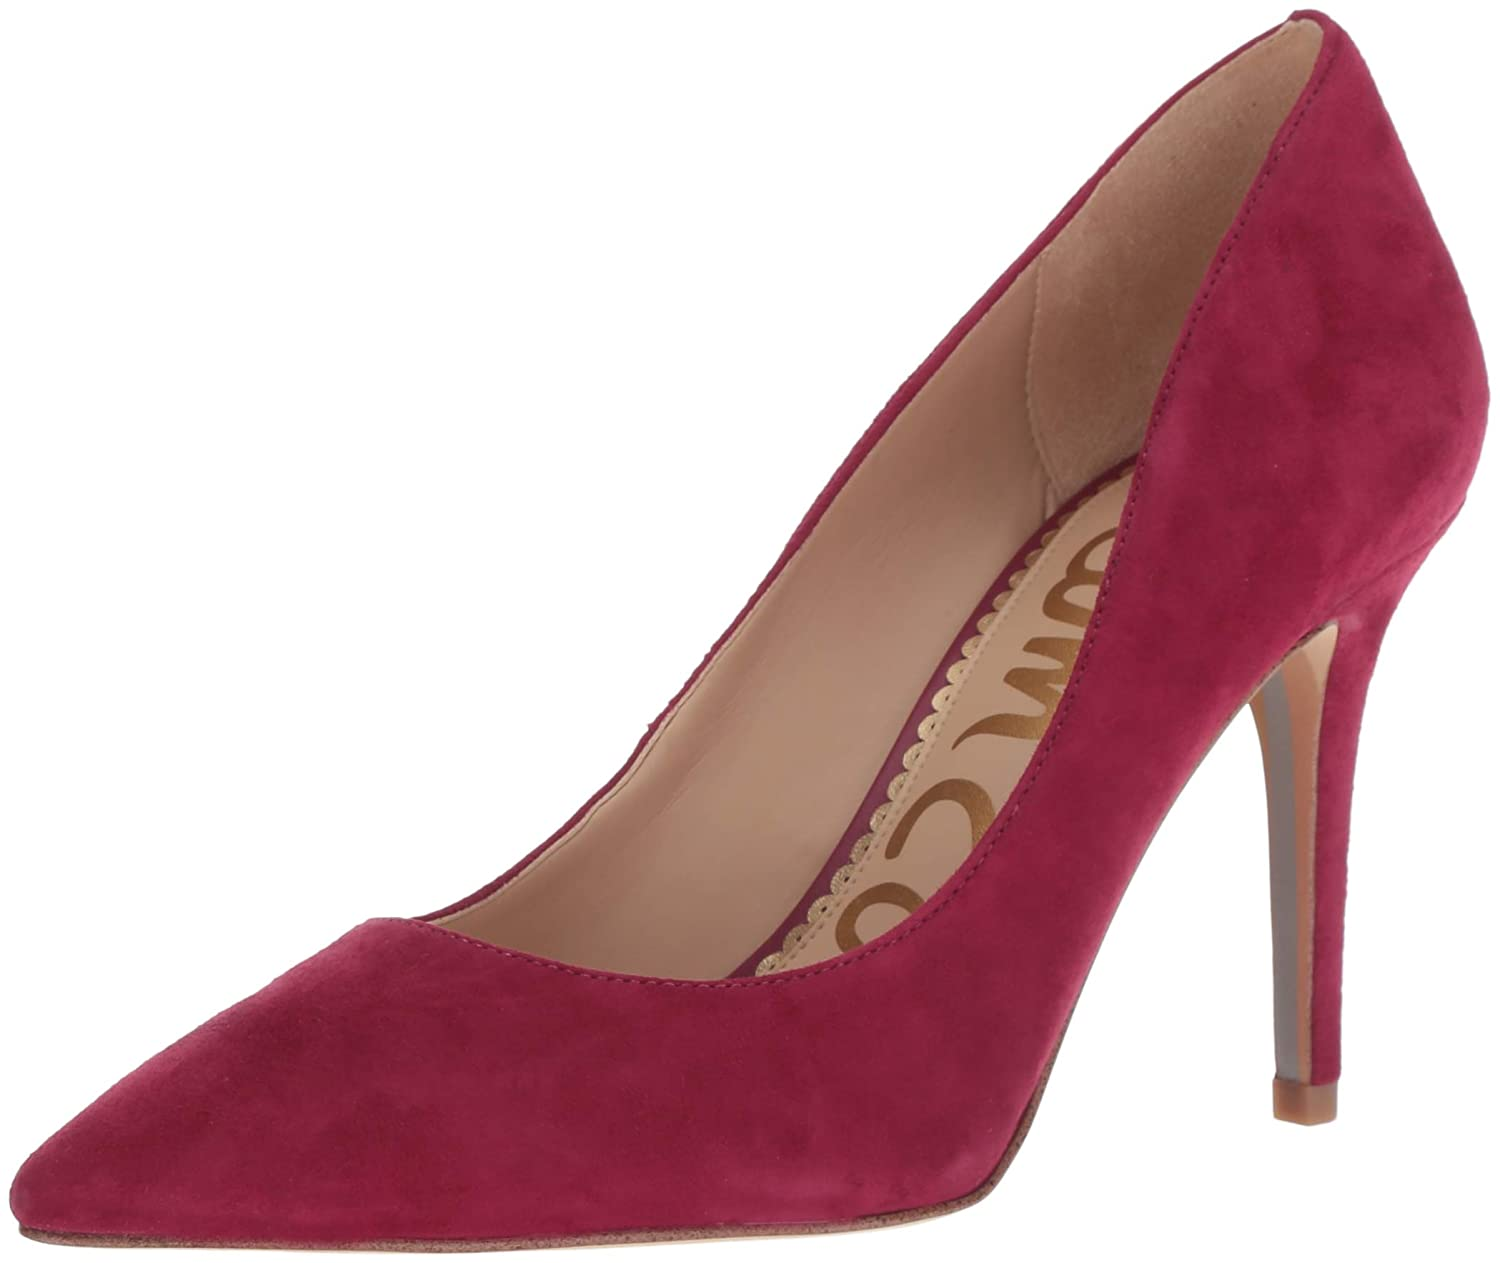 c3870891c06c Sam Edelman Women s s Margie Pump  Amazon.co.uk  Shoes   Bags